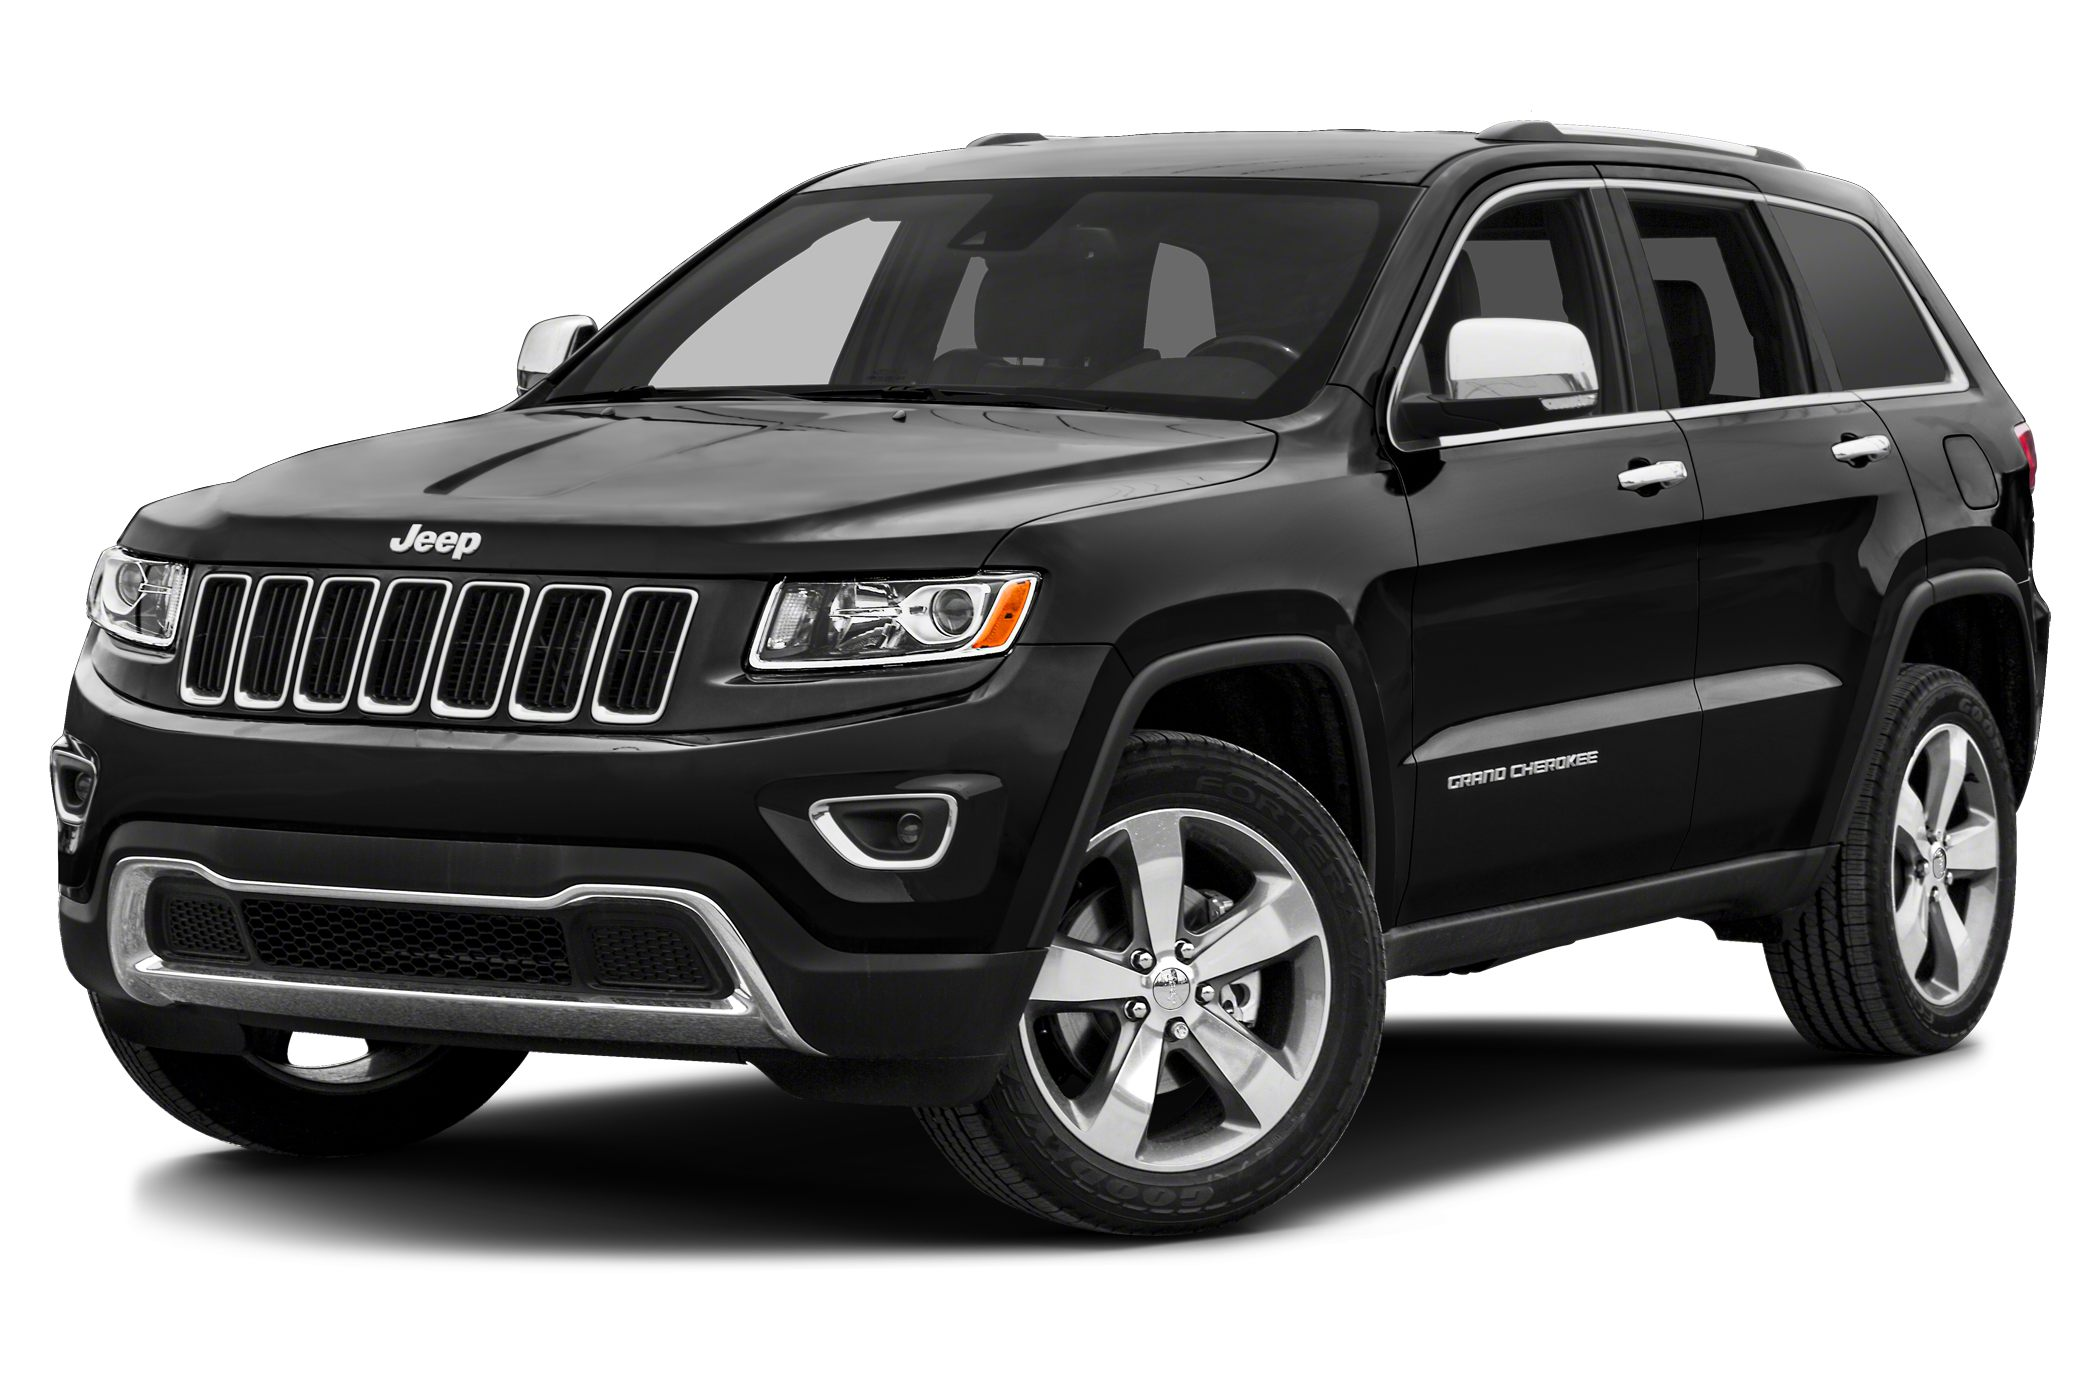 2017 jeep grand cherokee spied looking refreshed. Black Bedroom Furniture Sets. Home Design Ideas